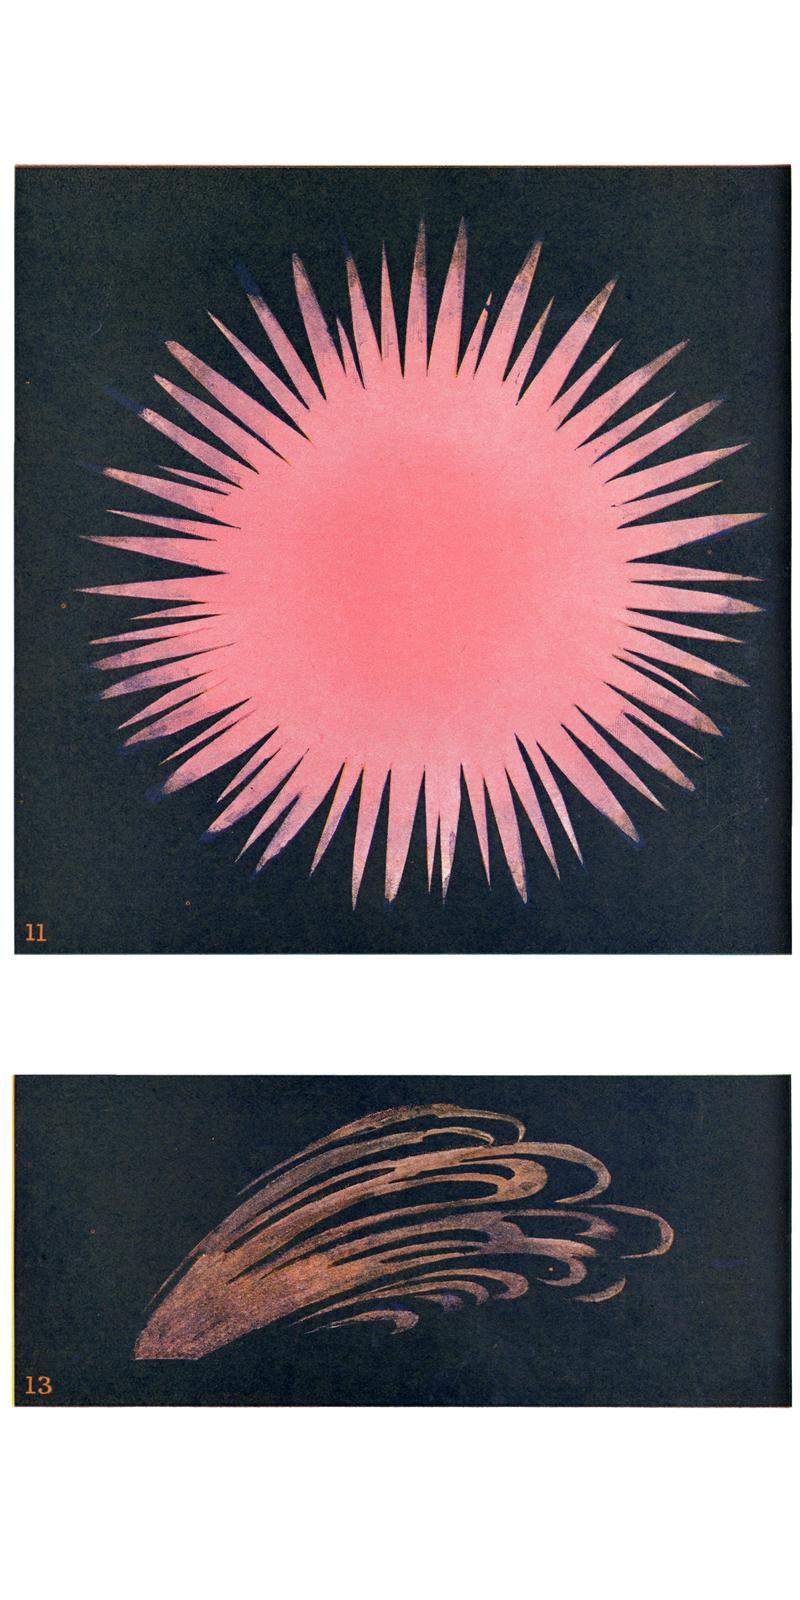 Sacred Bones Thought-Forms: A Record of Clairvoyant Investigation Occult Book Theosophical Illustrations 1905 Annie Besant Charles W. Leadbeater